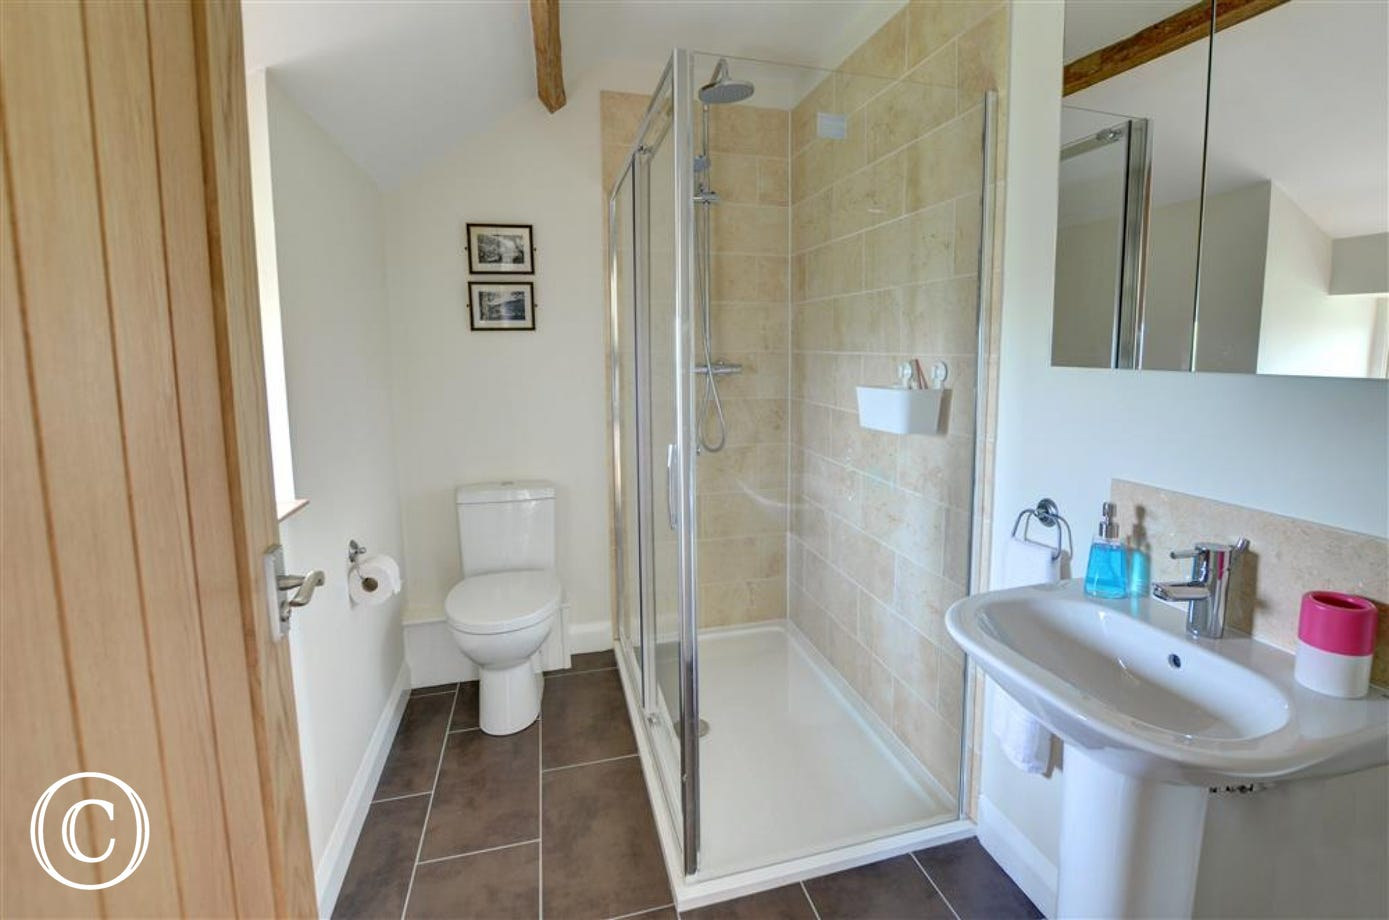 Bathroom has a large walk-in shower.